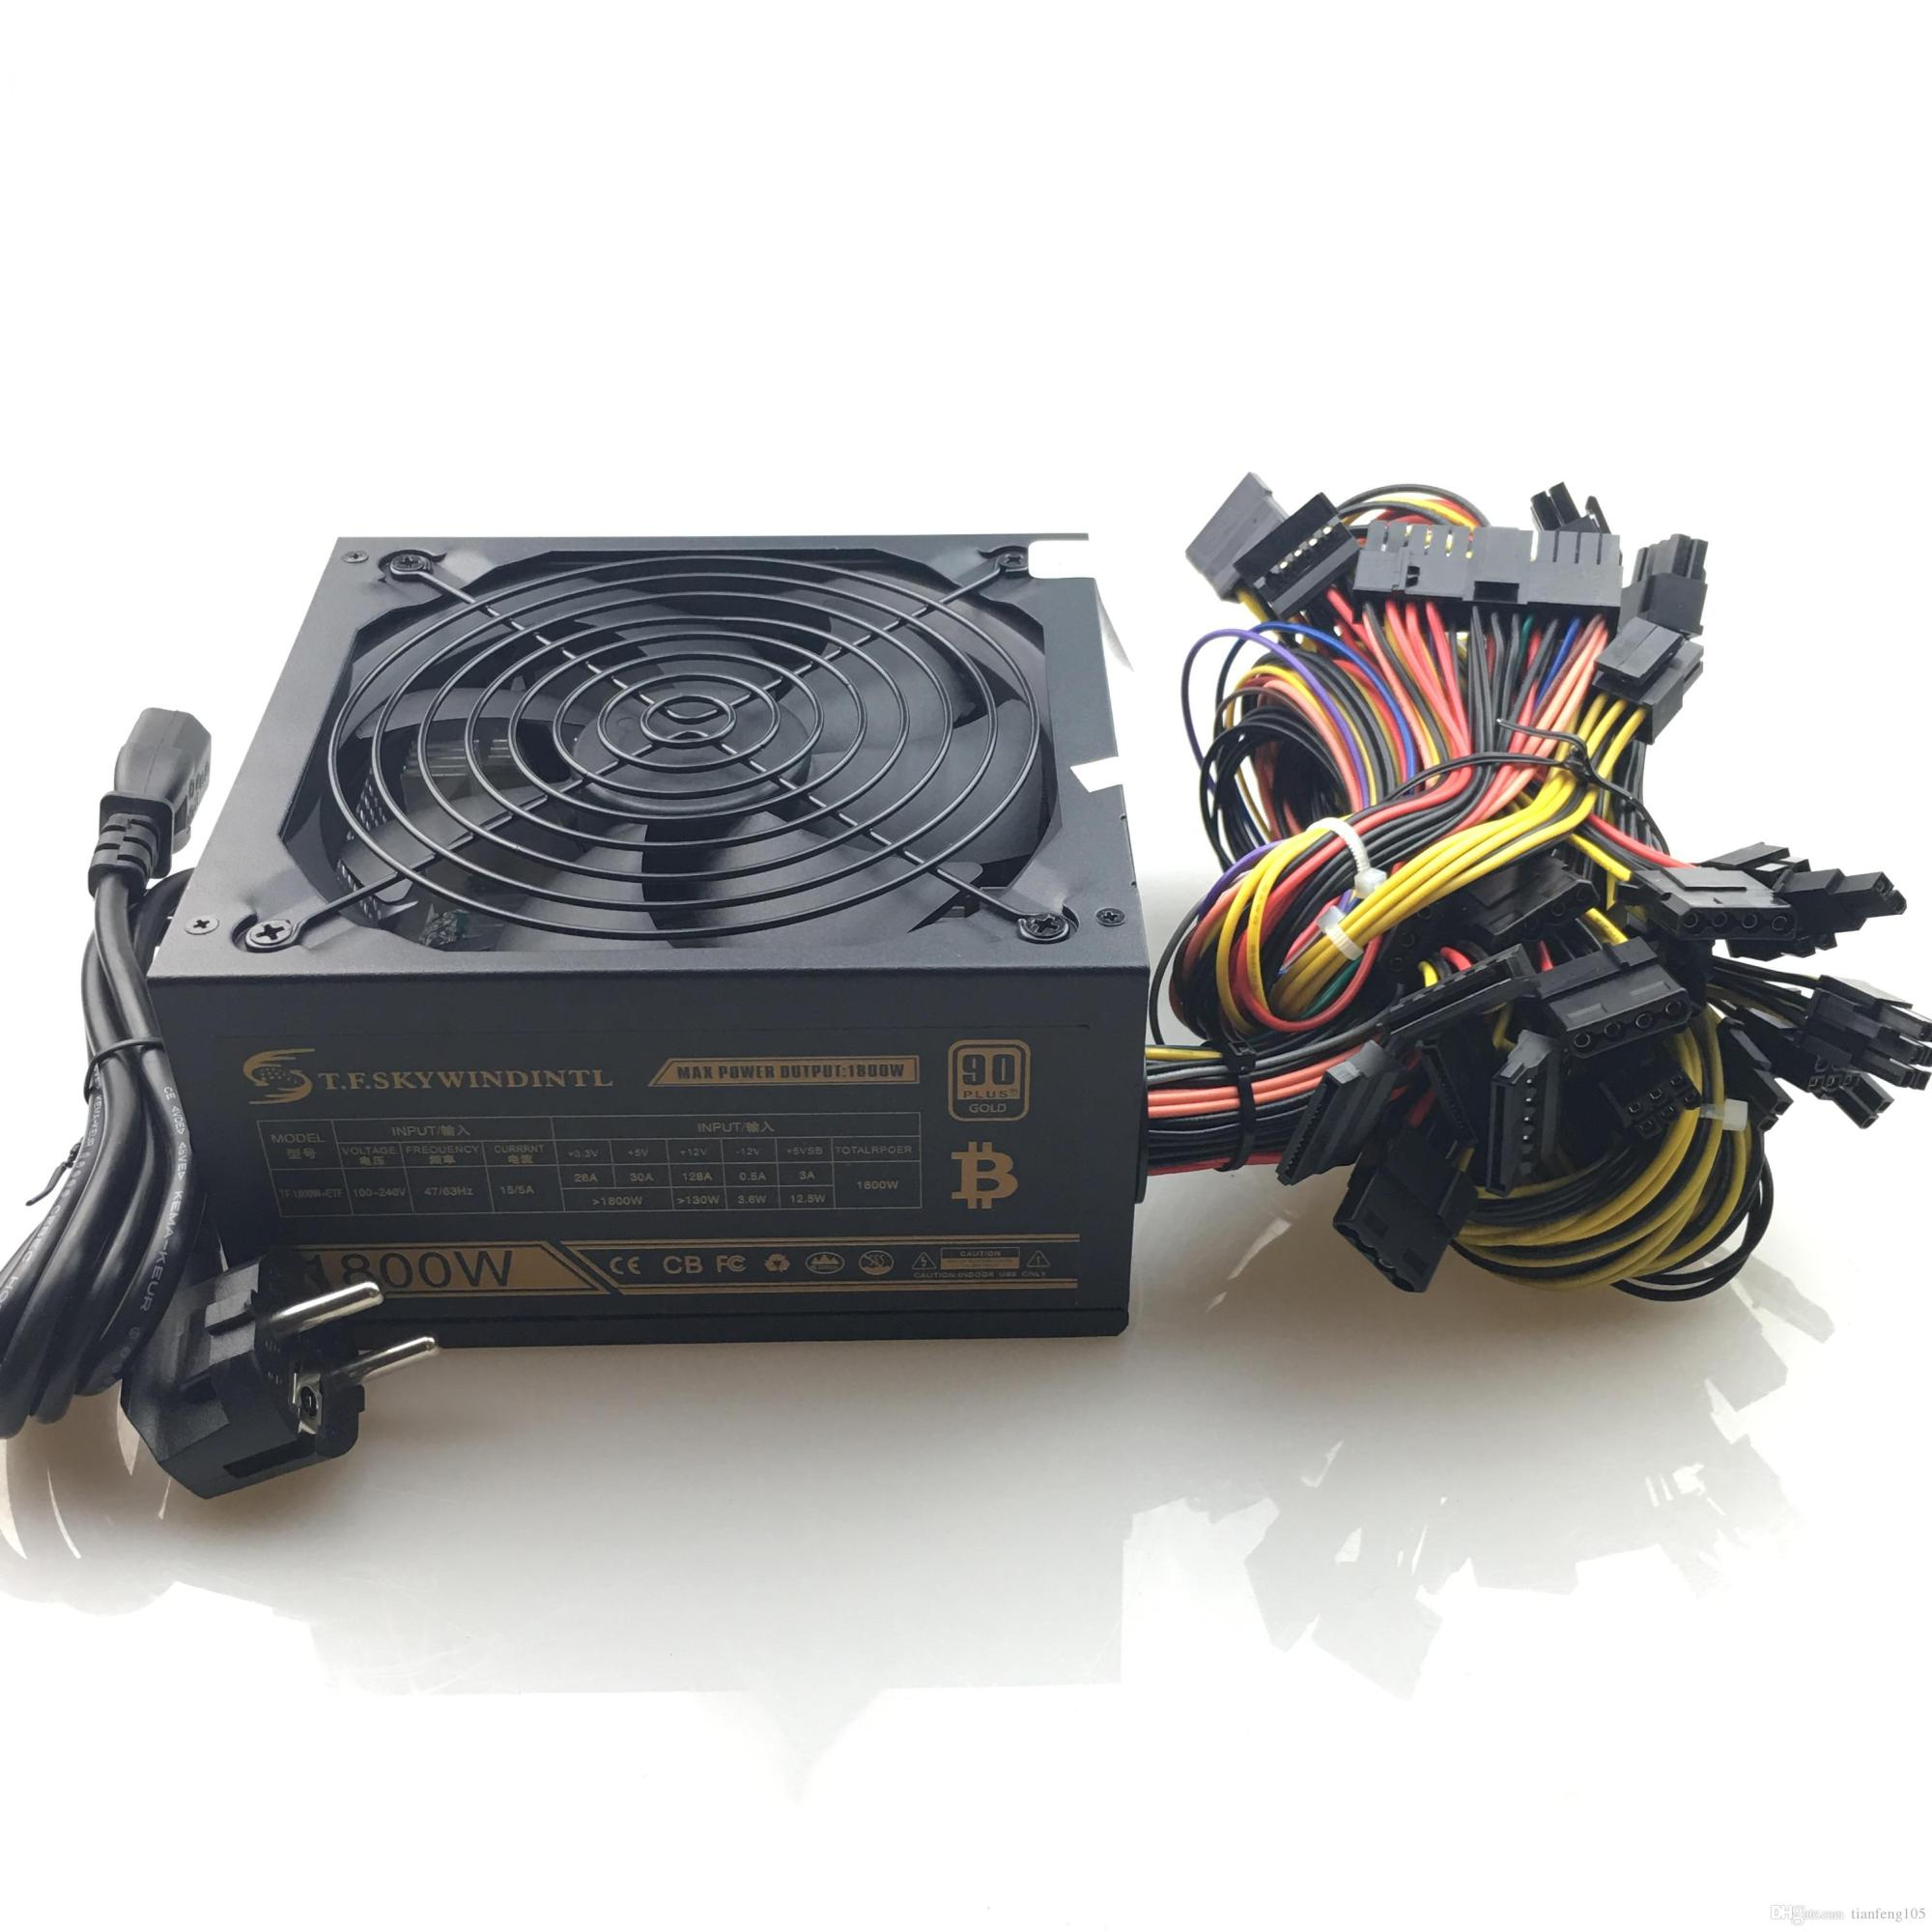 hight resolution of 2018 newest 1800w pc mining power supply psu 24pin for bitcoin miner r9 380 390 rx 470 480 rx 570 1060 for antminer